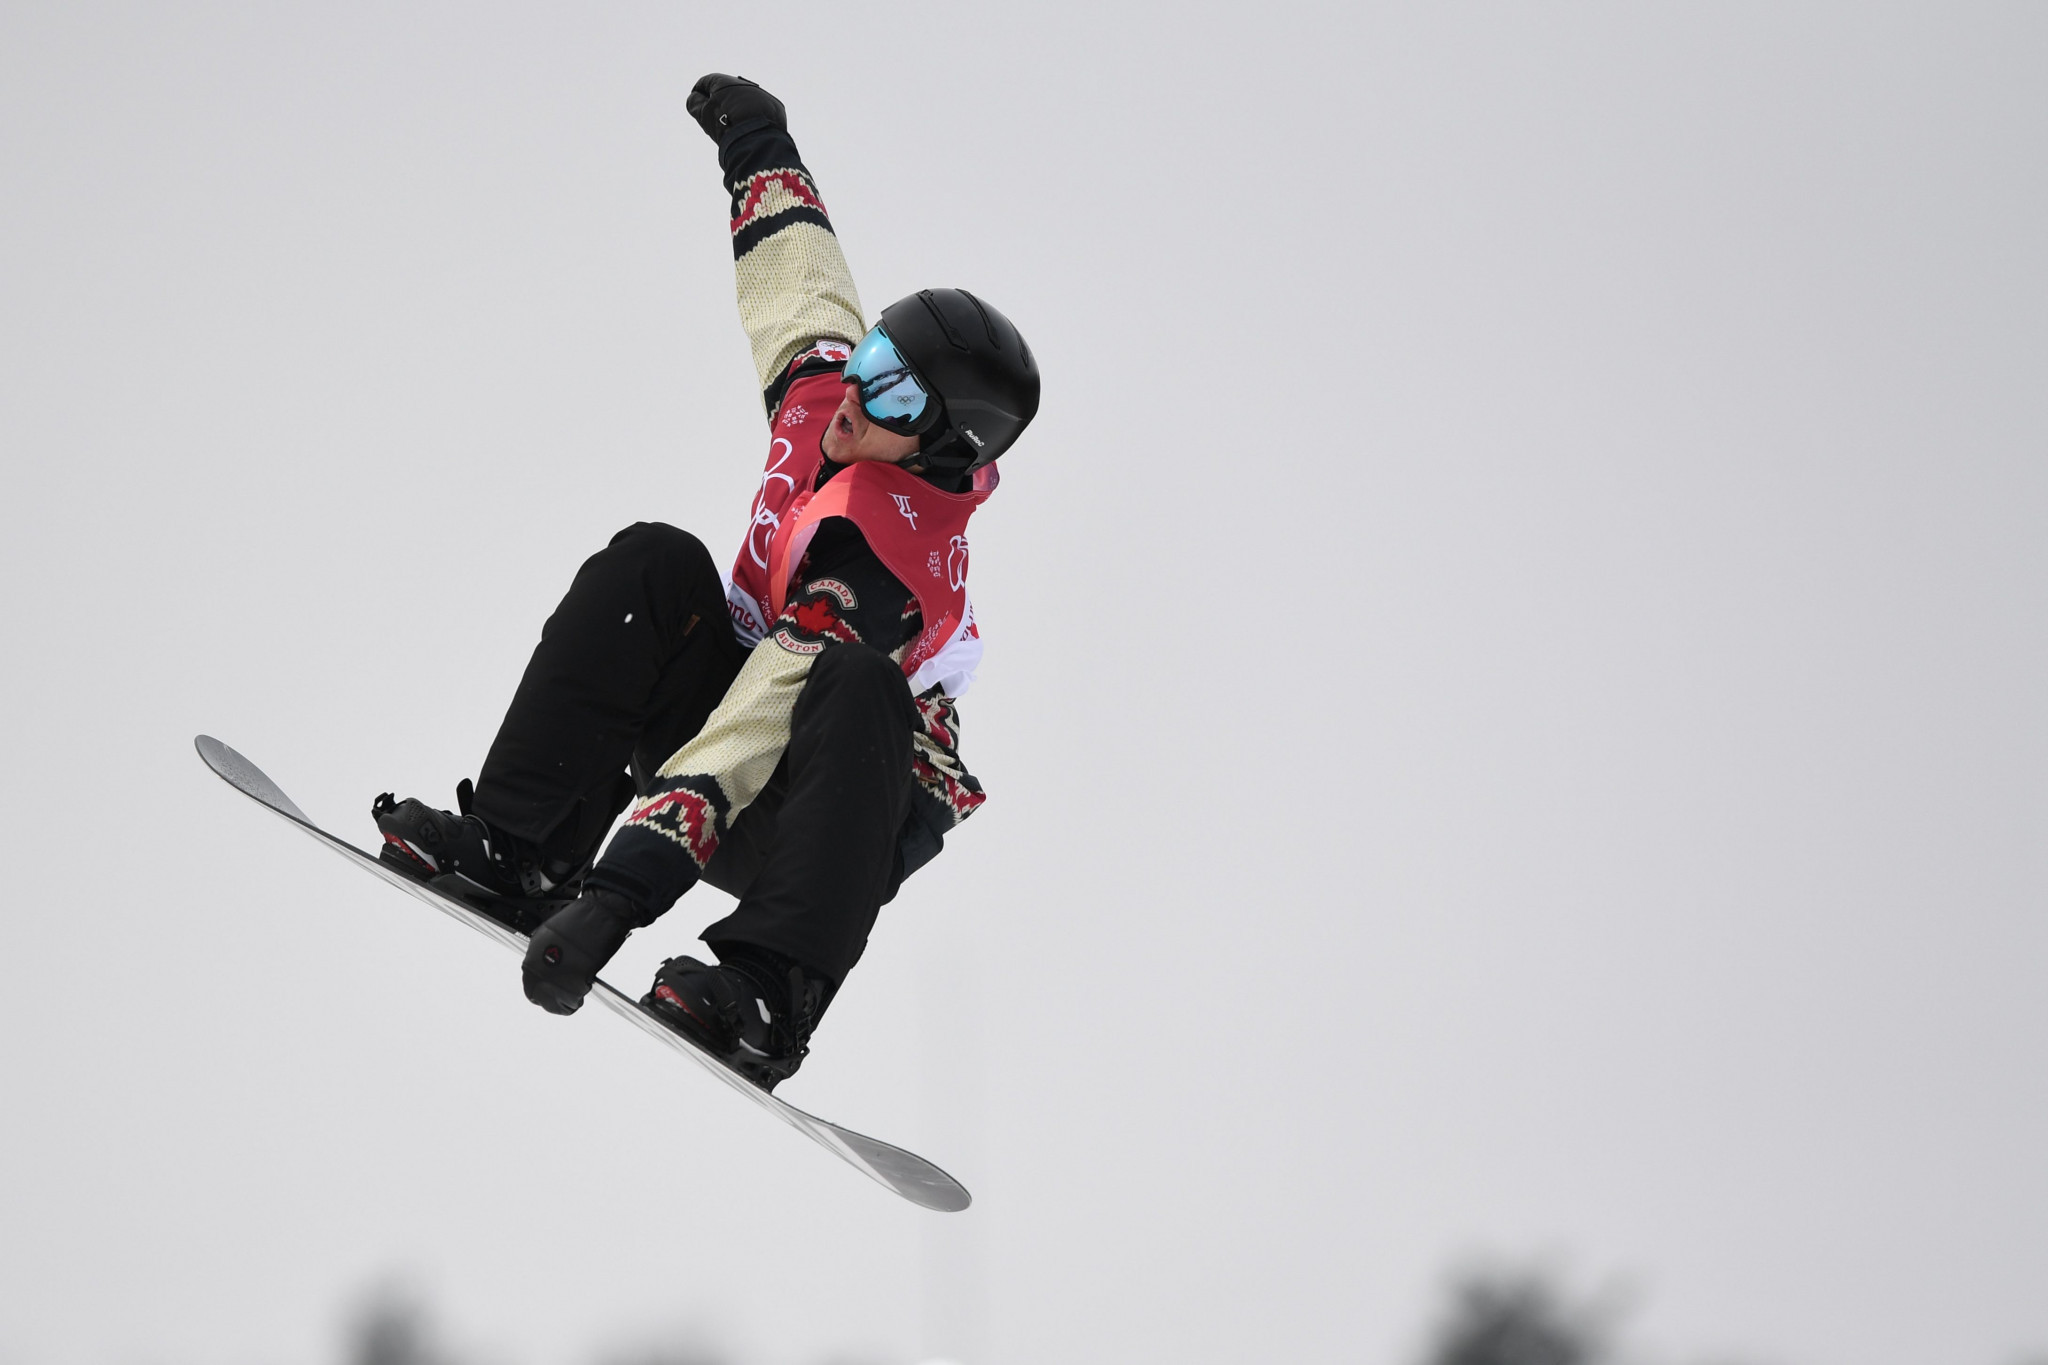 Max Parrot is aiming to return to competition at the end of August ©Getty Images